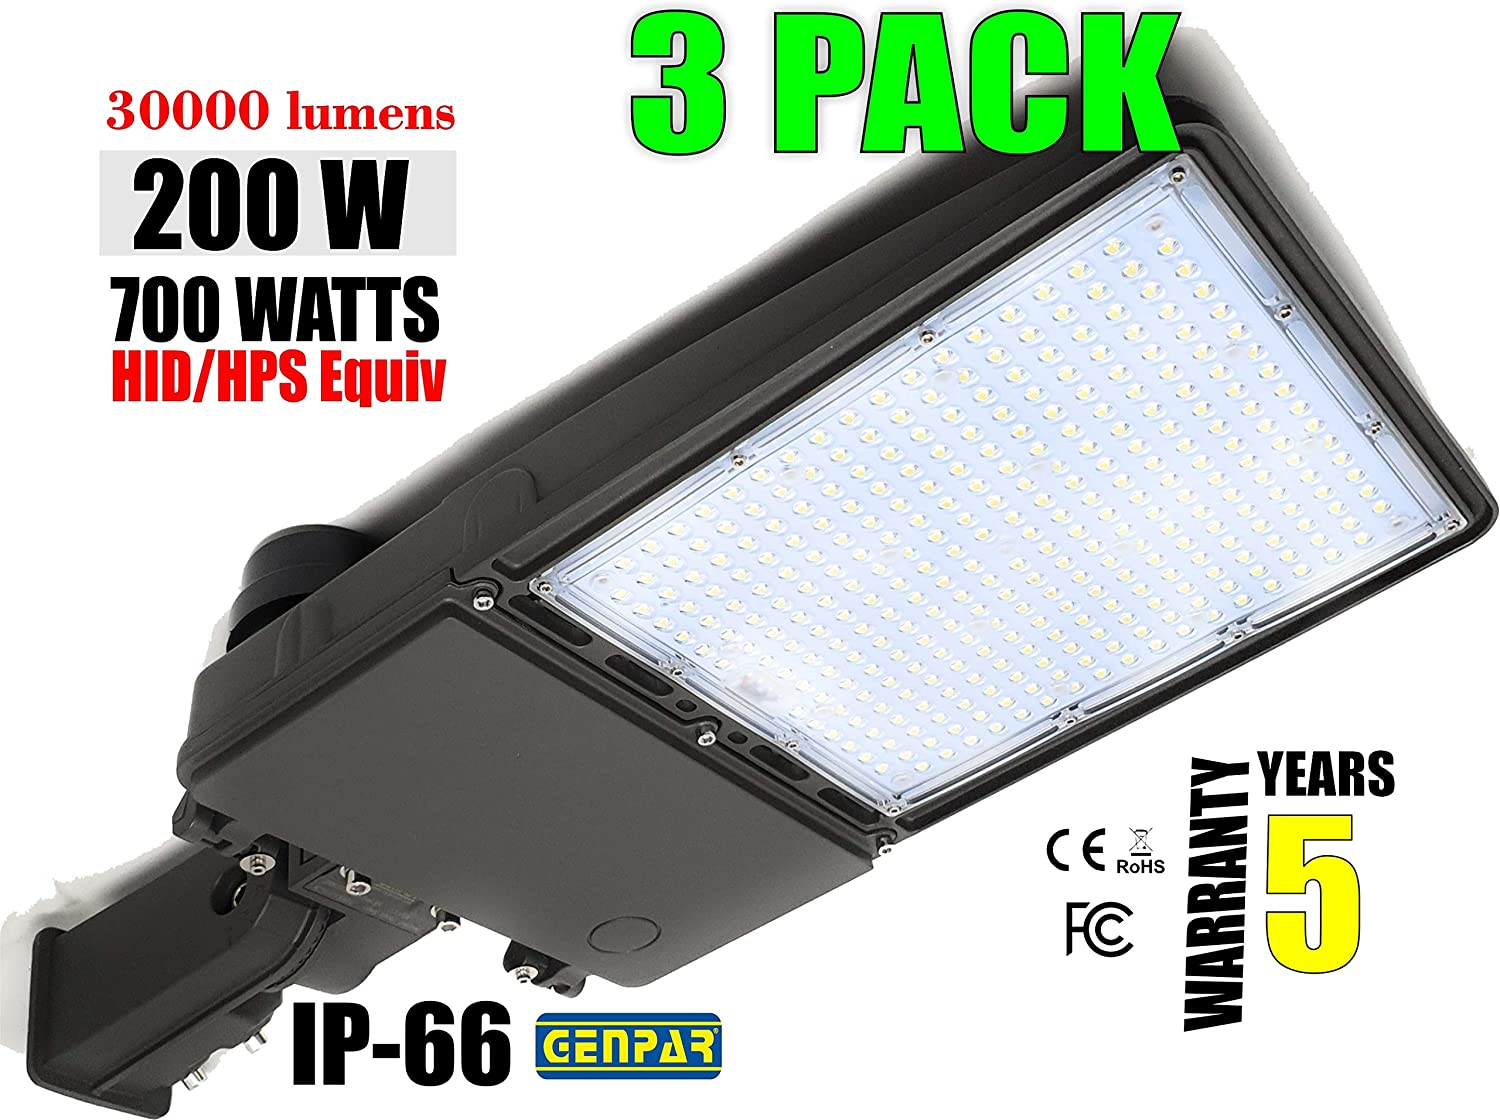 GENPAR 200W 3PK Shoebox LED Parking Lot Light 30000lm lumens Slip Fit Mount Outdoor Lighting Dusk to Dawn Photocell Pole Flood 5700K 700W Equivalent Commercial Street Area Lighting Stadium 5 Years